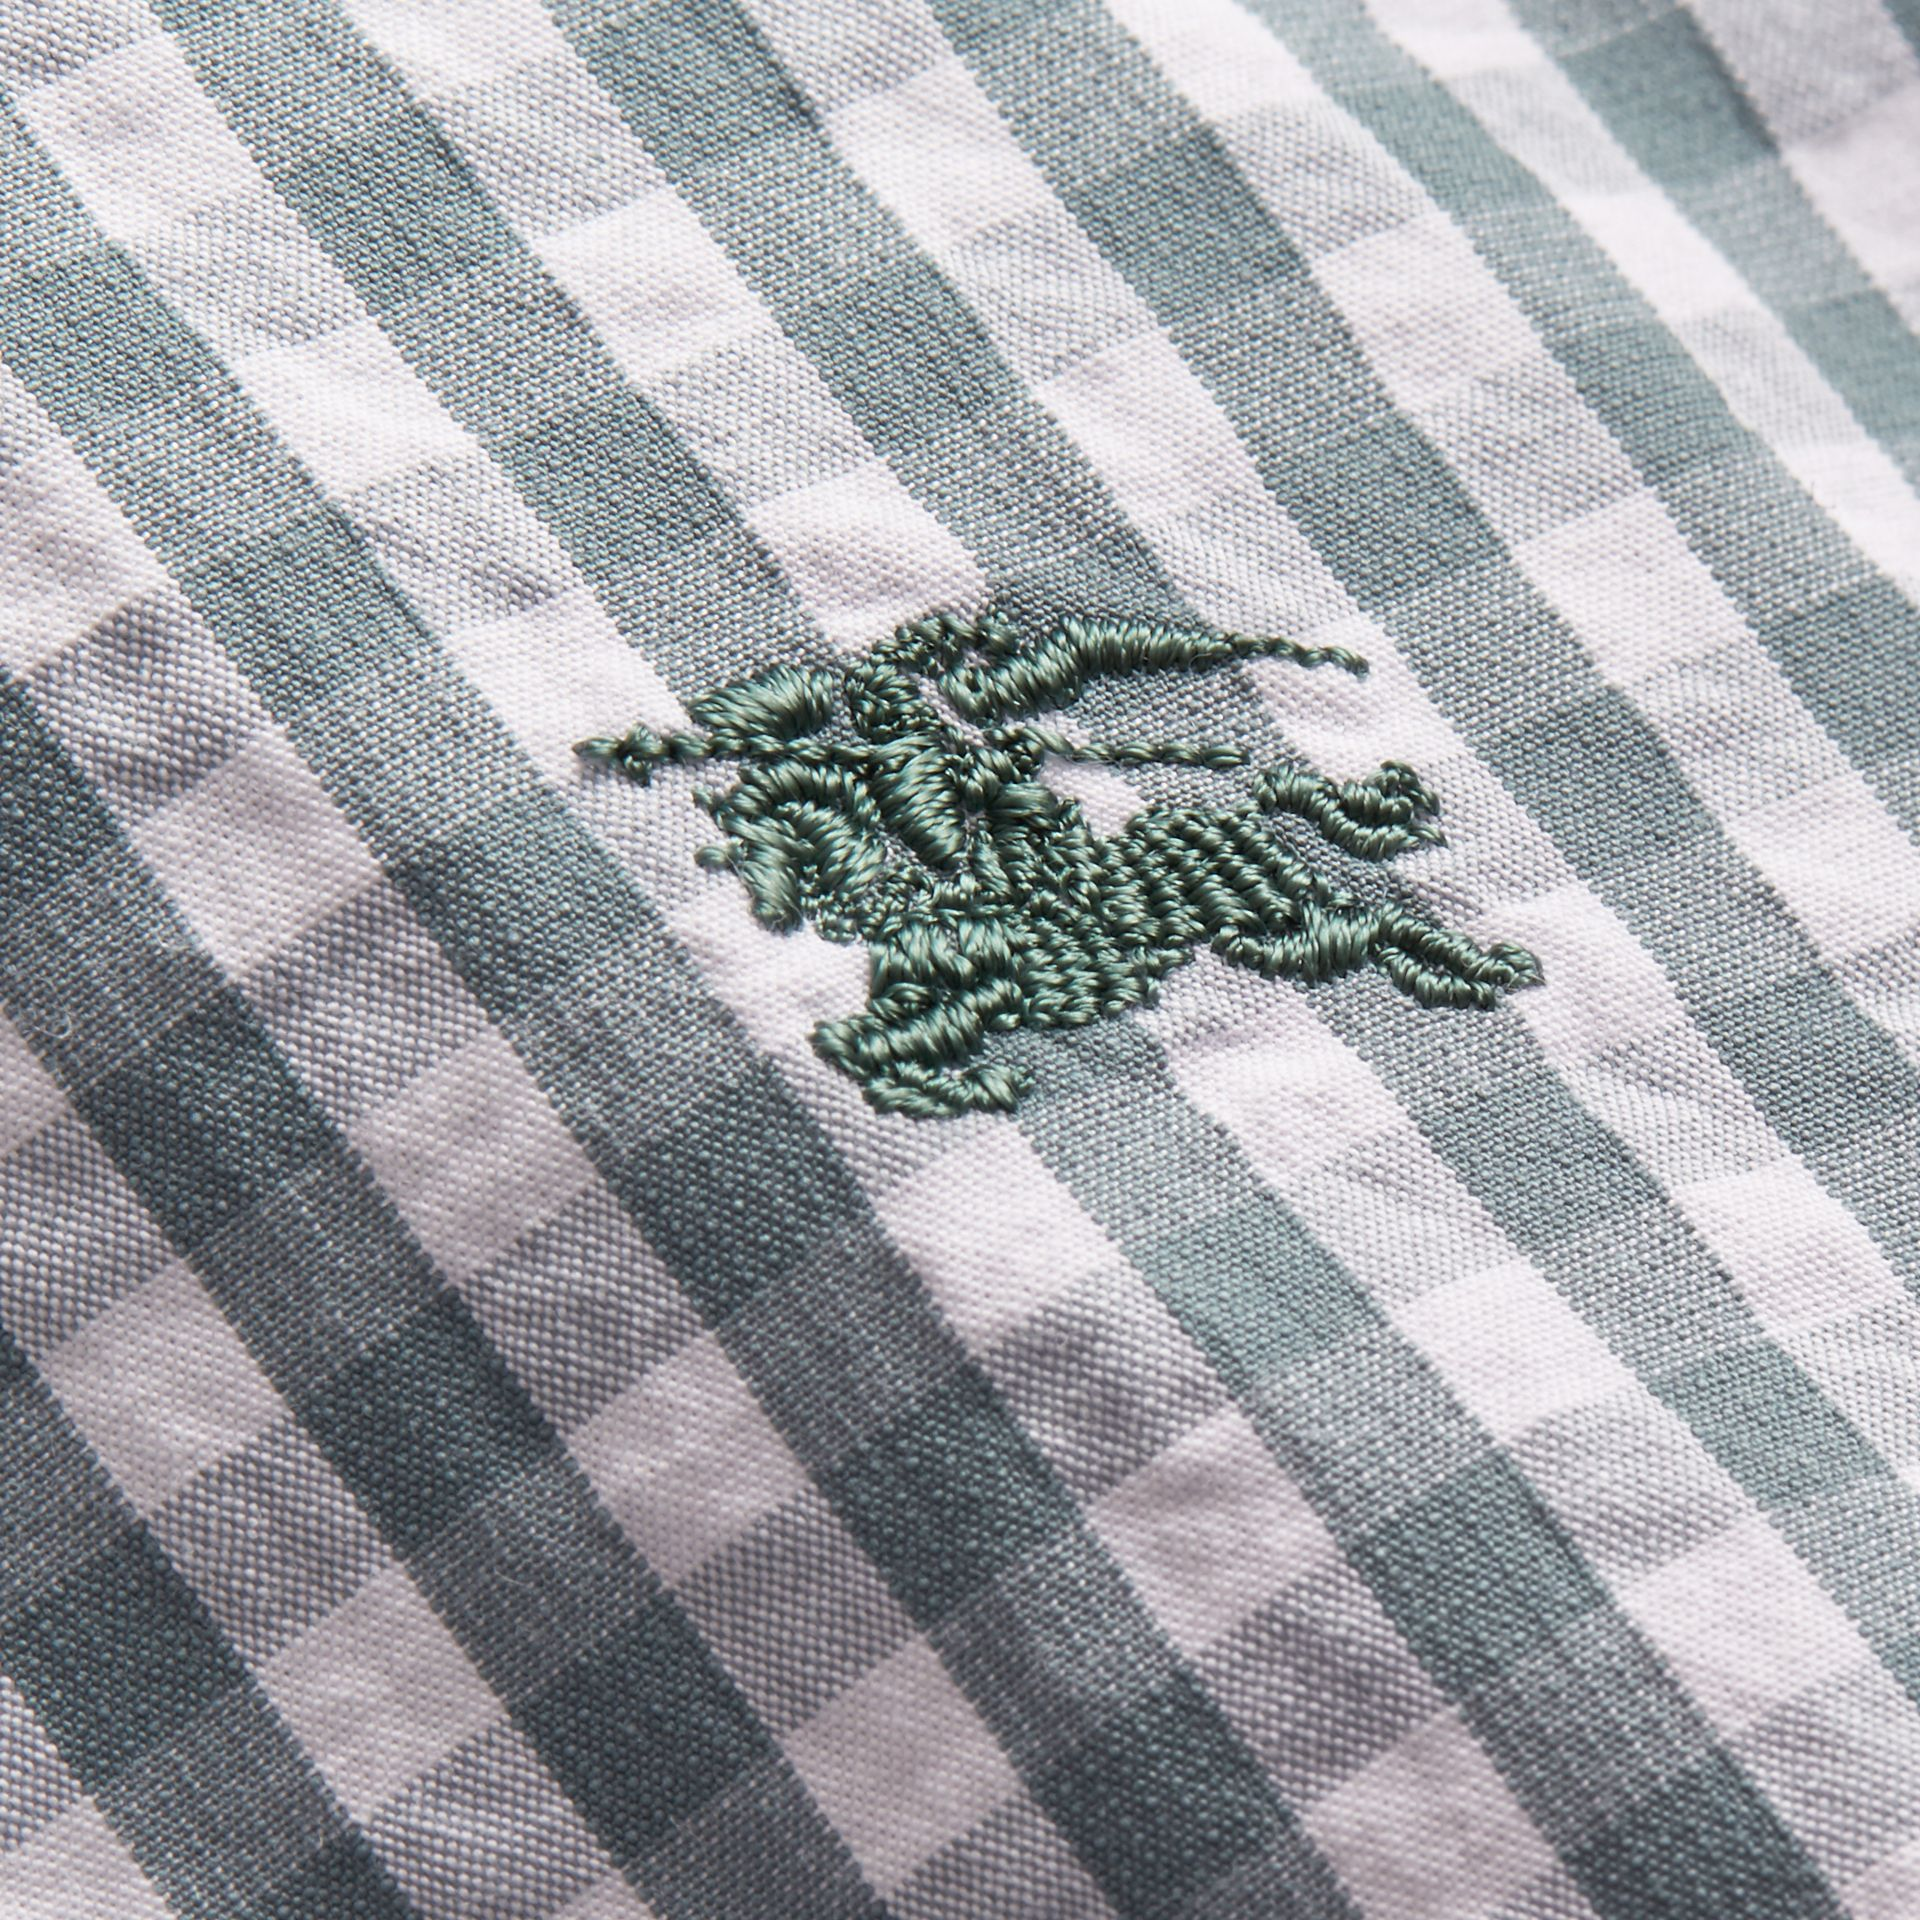 Gingham Cotton Poplin Shirt with Check Detail in Dusty Teal Blue - Men | Burberry Singapore - gallery image 2